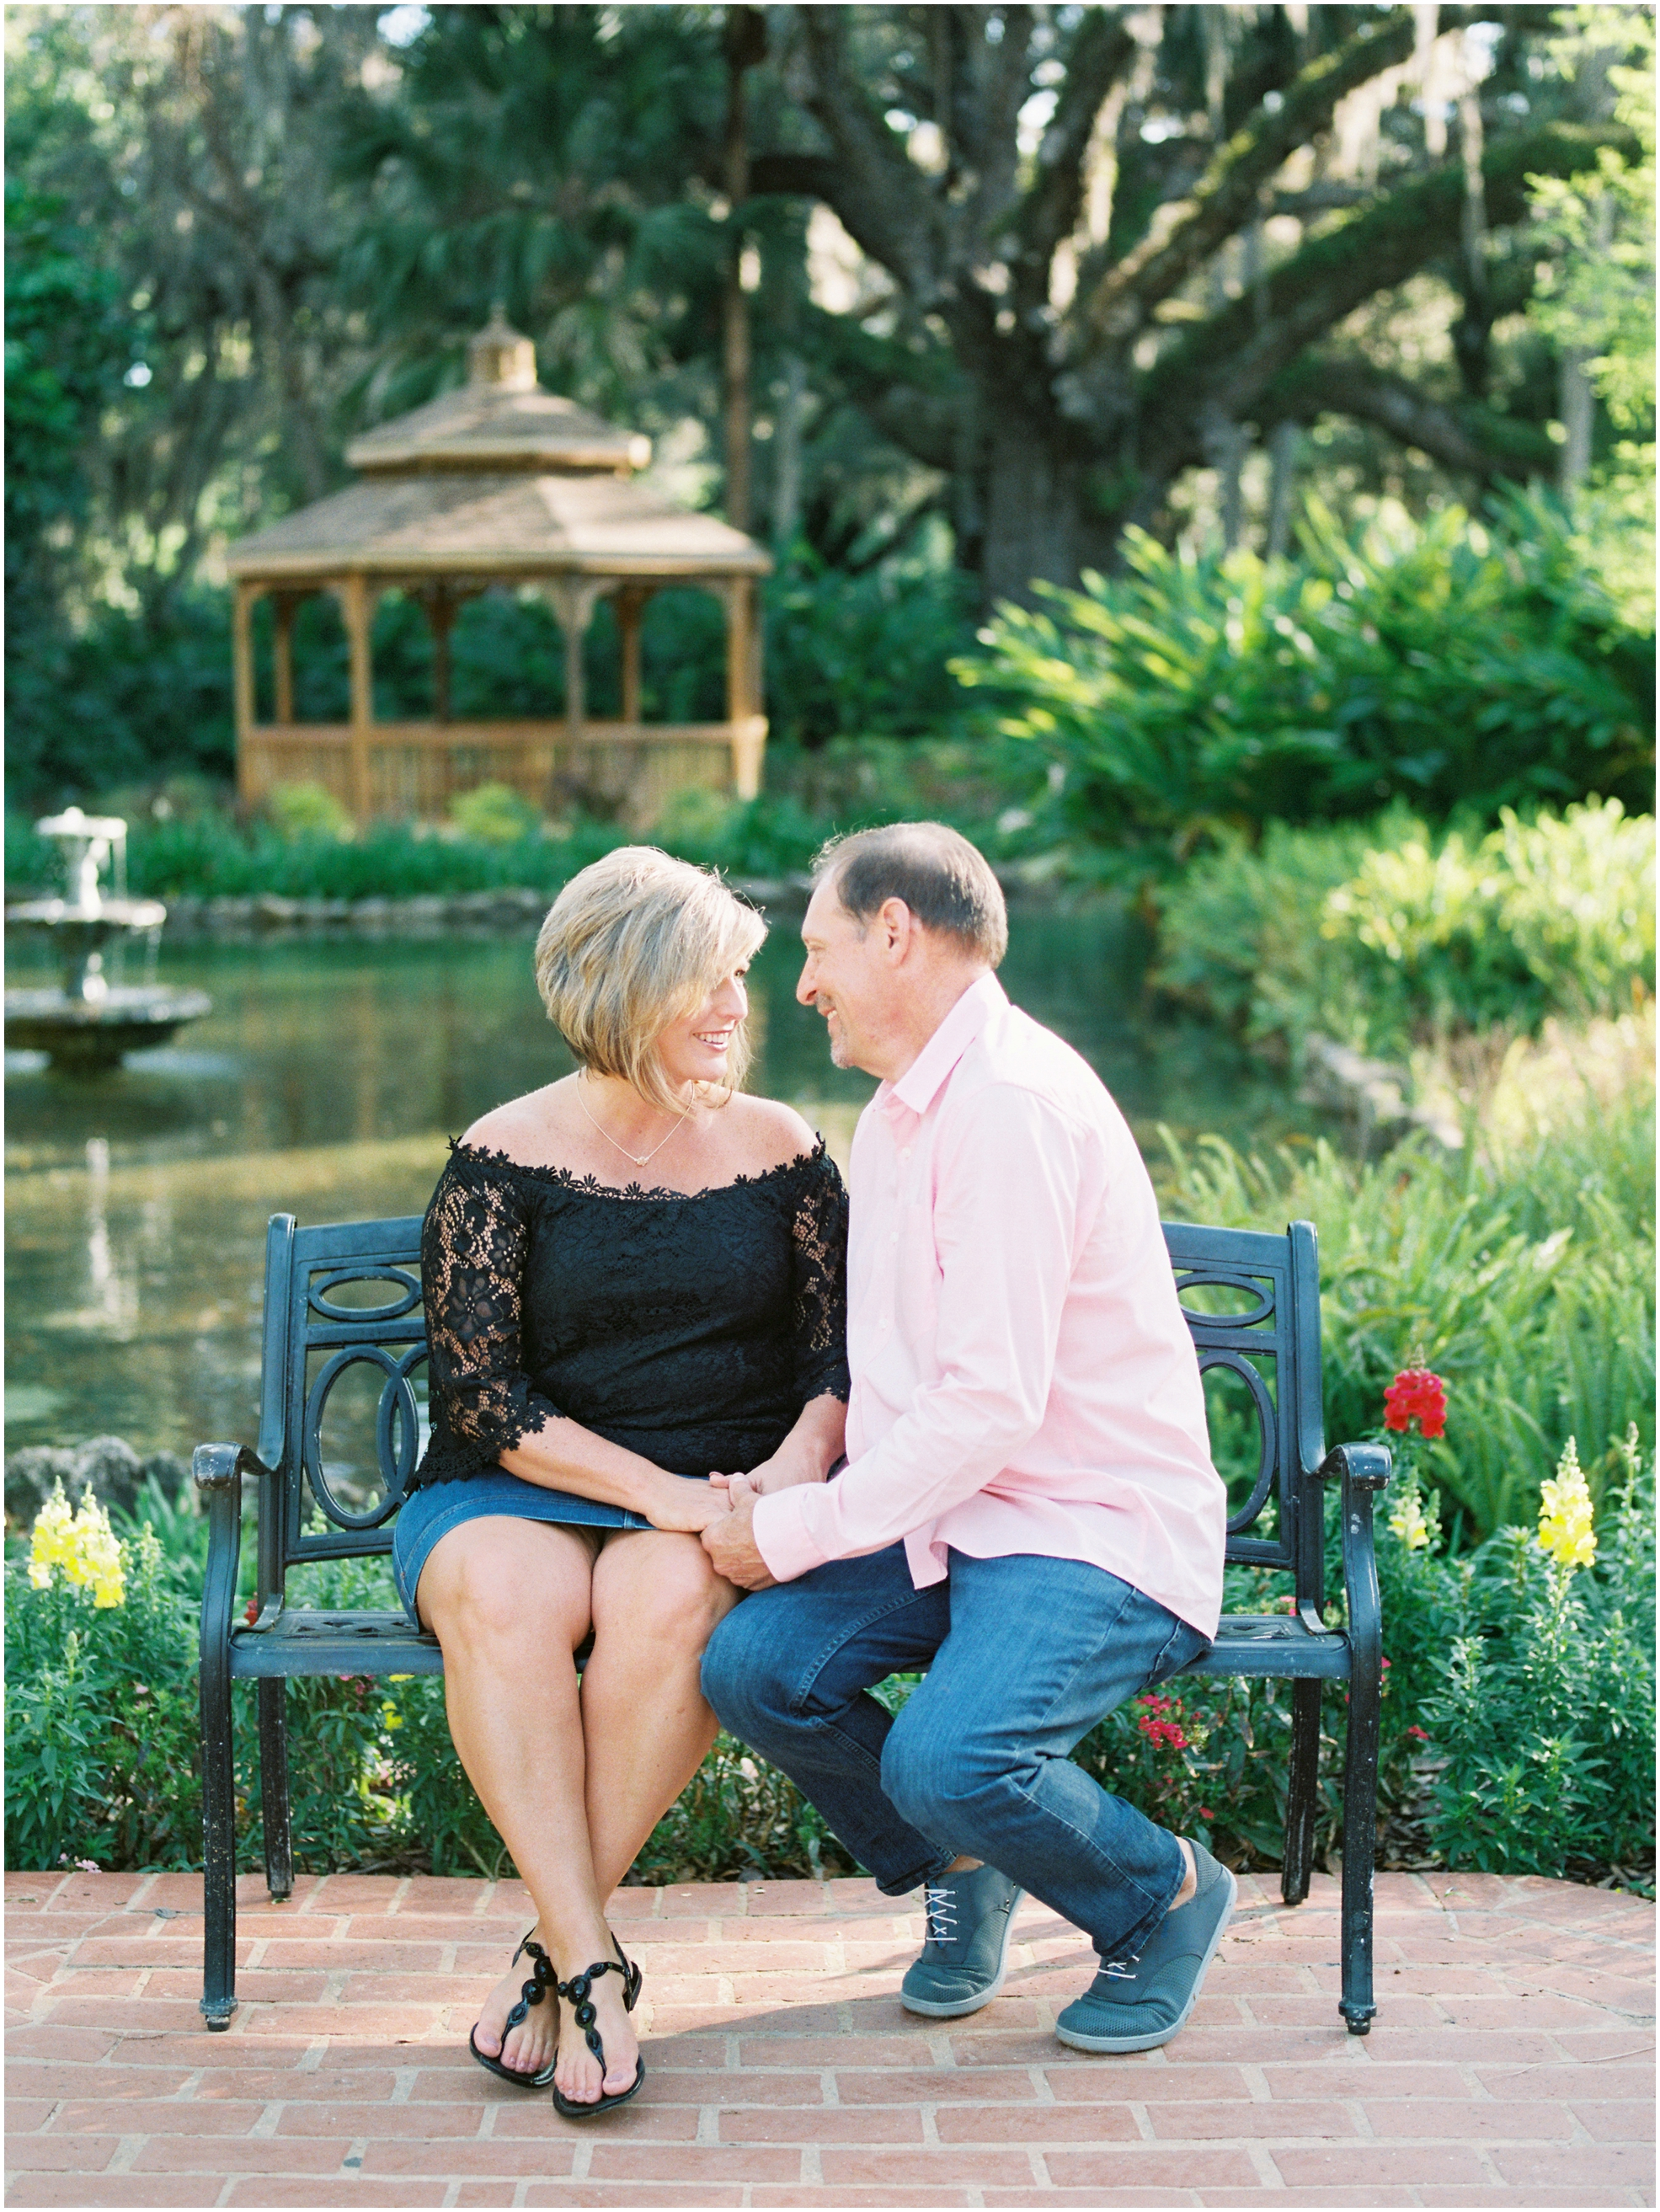 Lisa Silva Photography- Jacksonville, St. Augustine, Amelia Island, Ponte Vedra Beach, North East Florida Fine Art Film Photographer- Anniversary Session at Washington Oaks in Palm Coast, Florida_0035.jpg